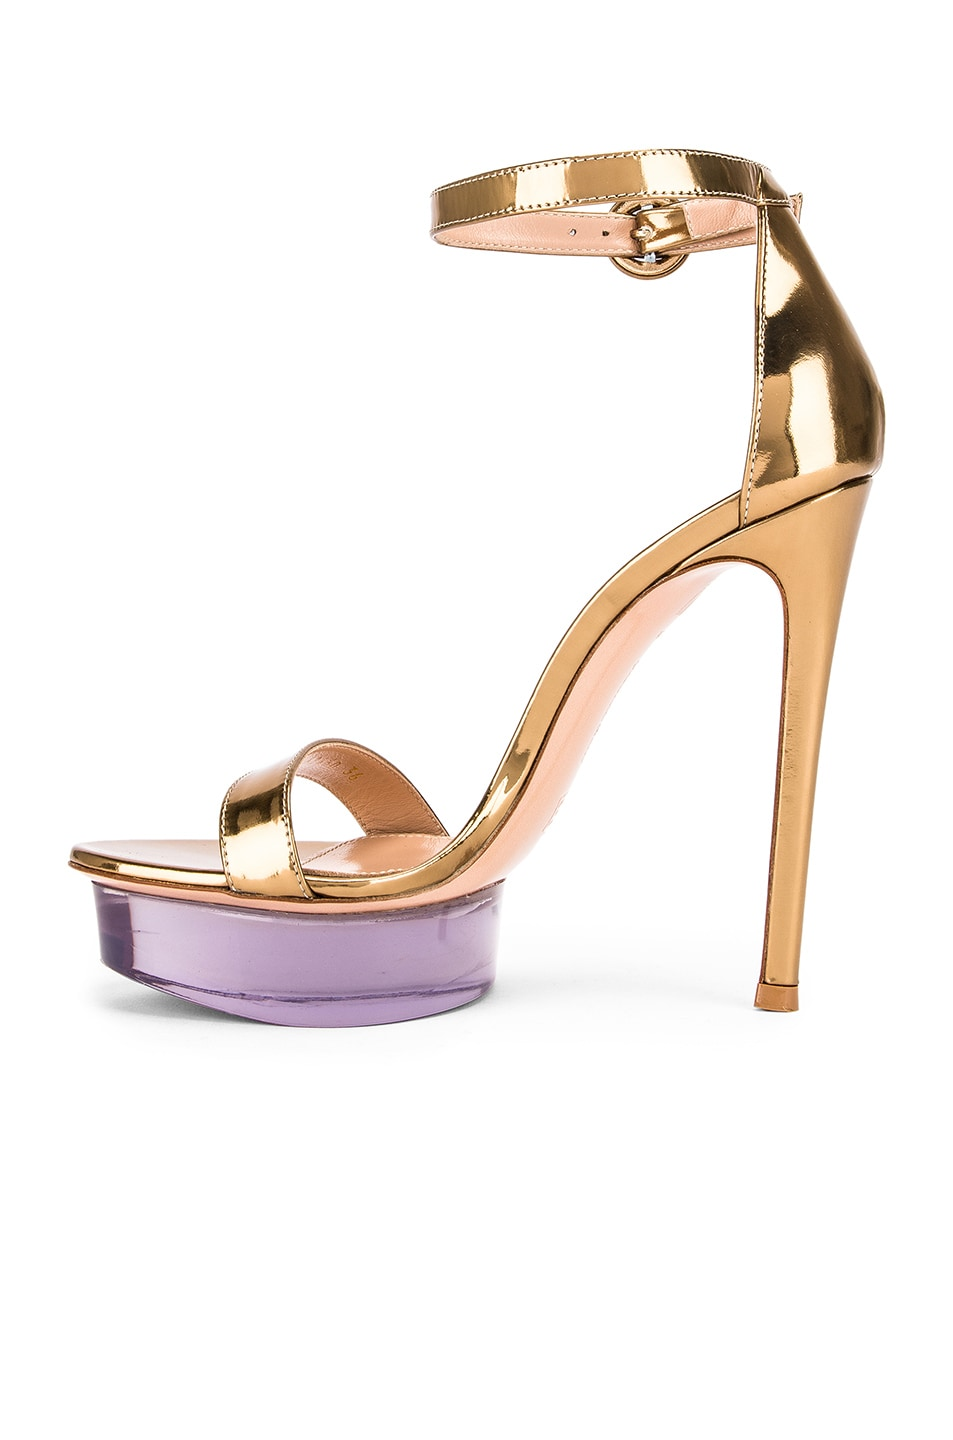 Image 5 of Gianvito Rossi Ankle Strap Platform Heels in Gold